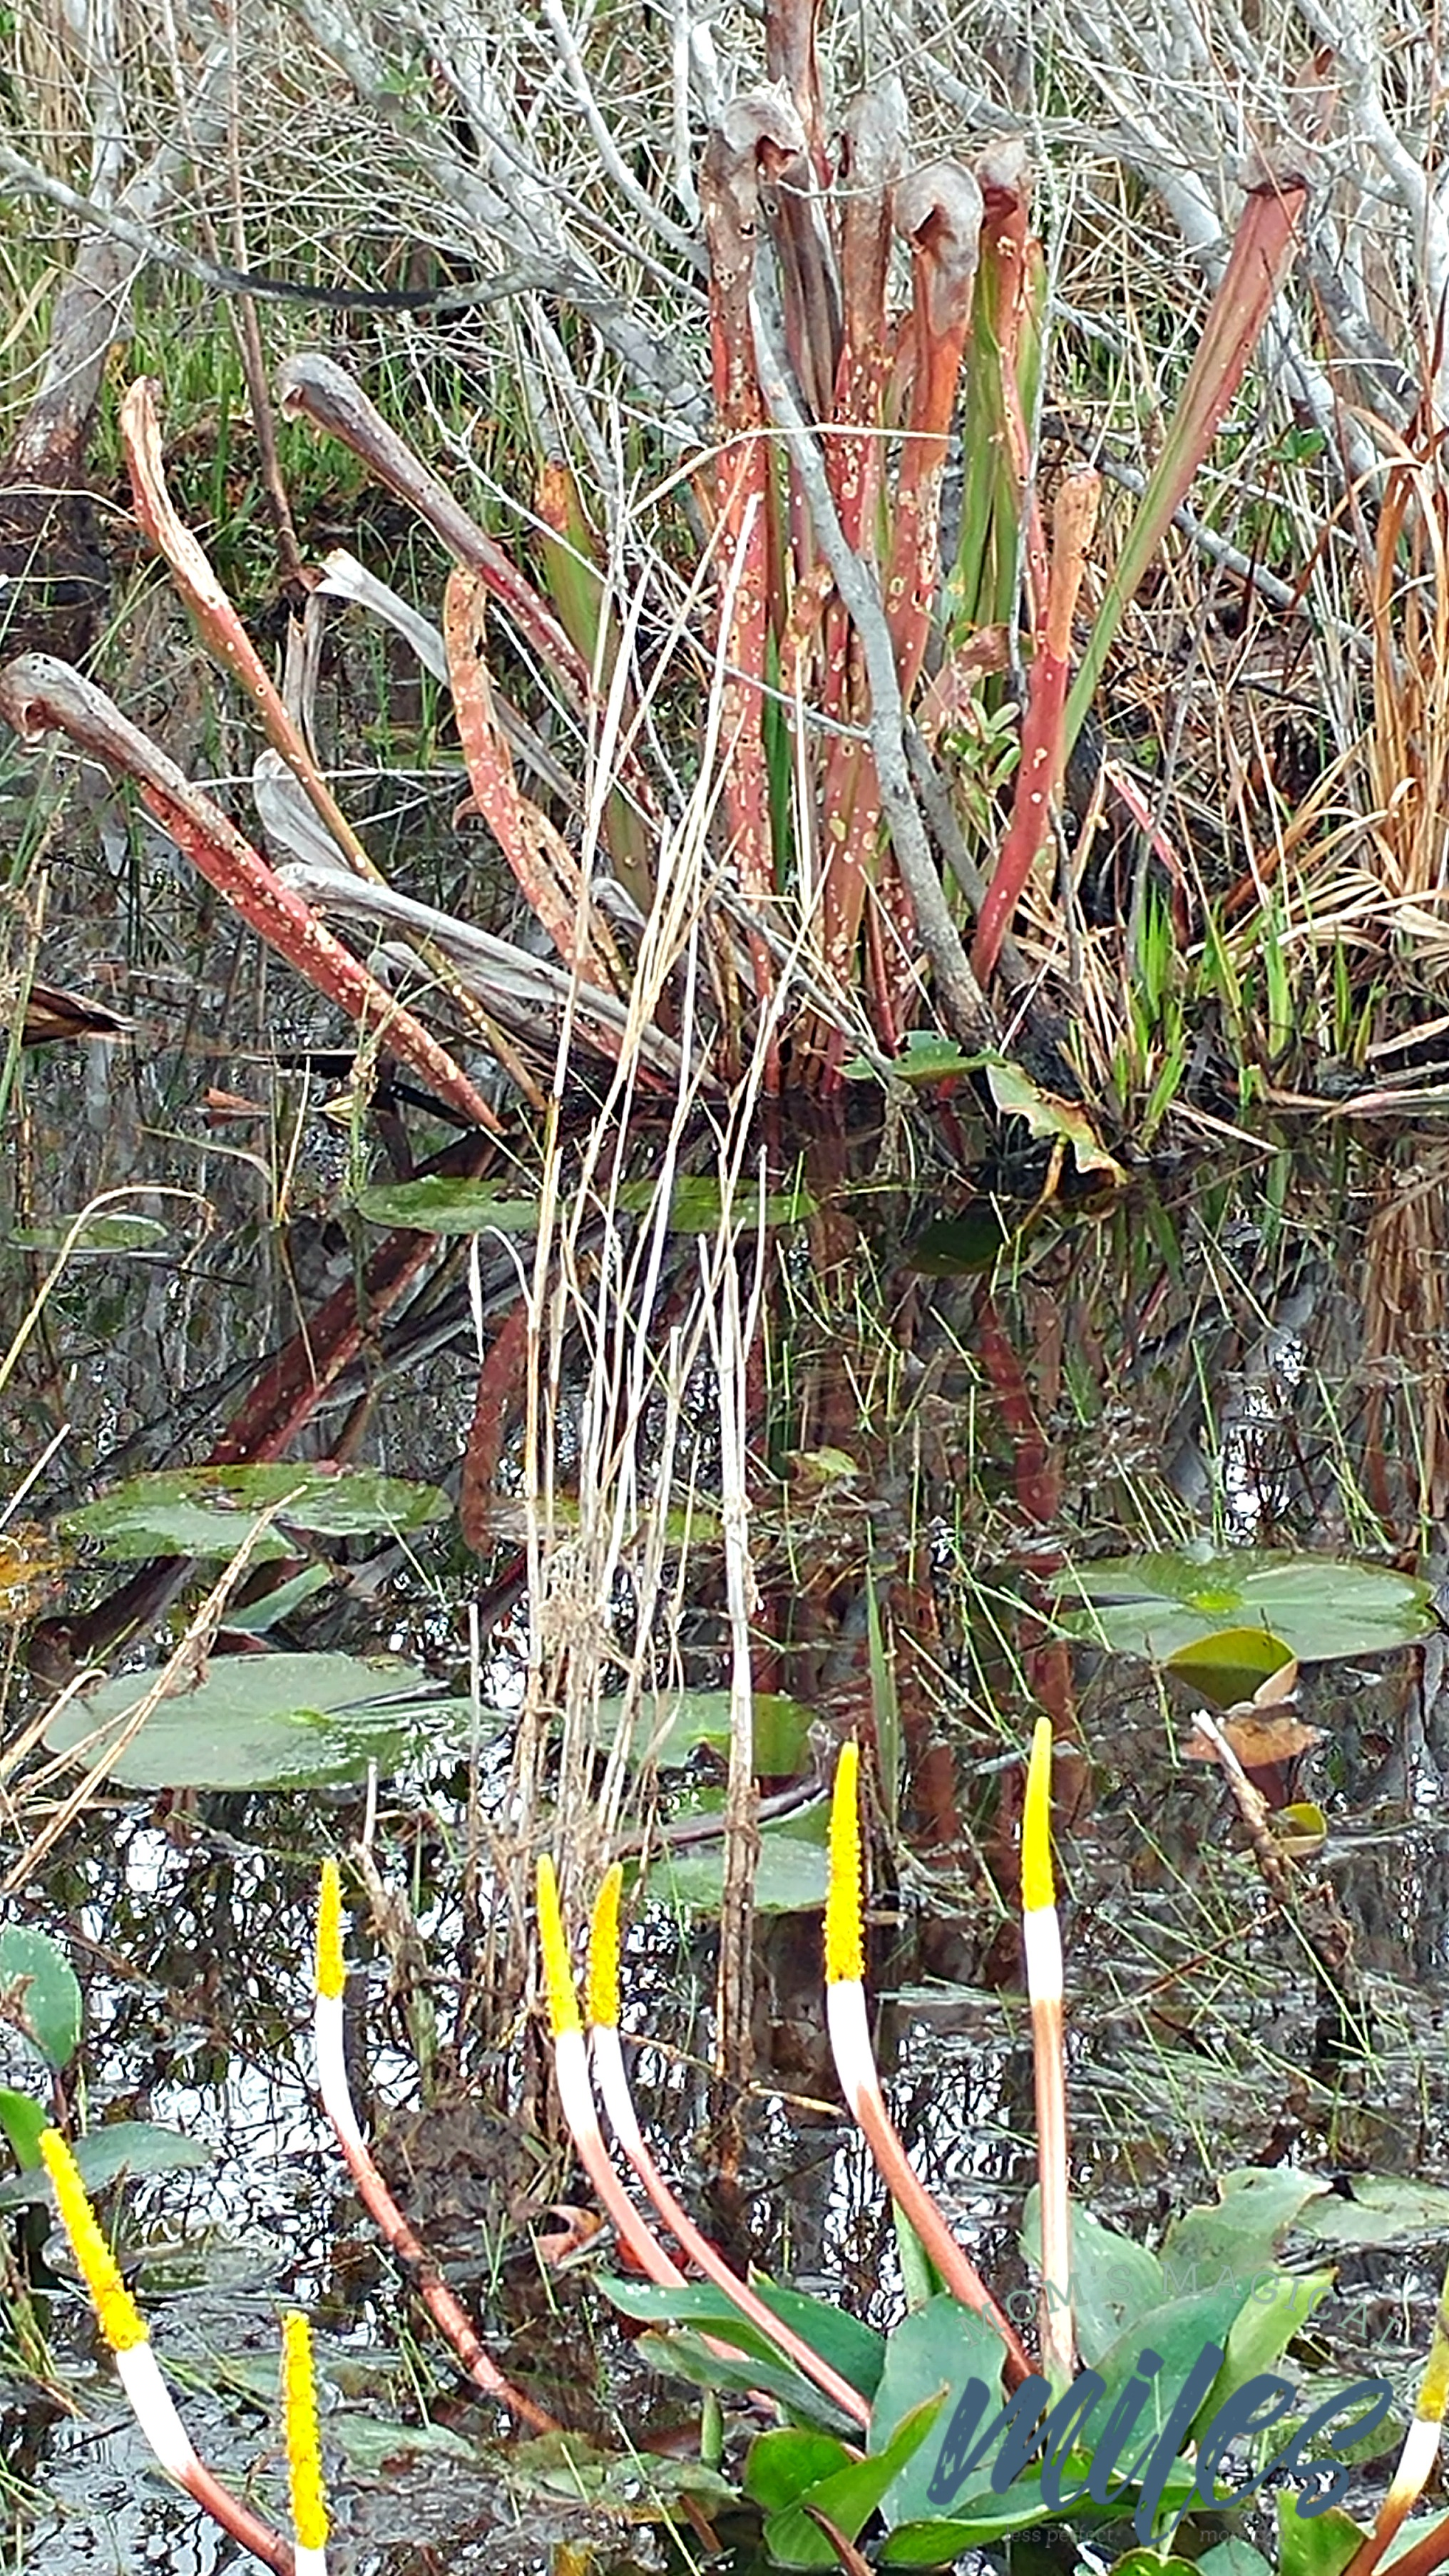 In the middle of the Okefenokee Swamp is an abundant and beautiful plant life.